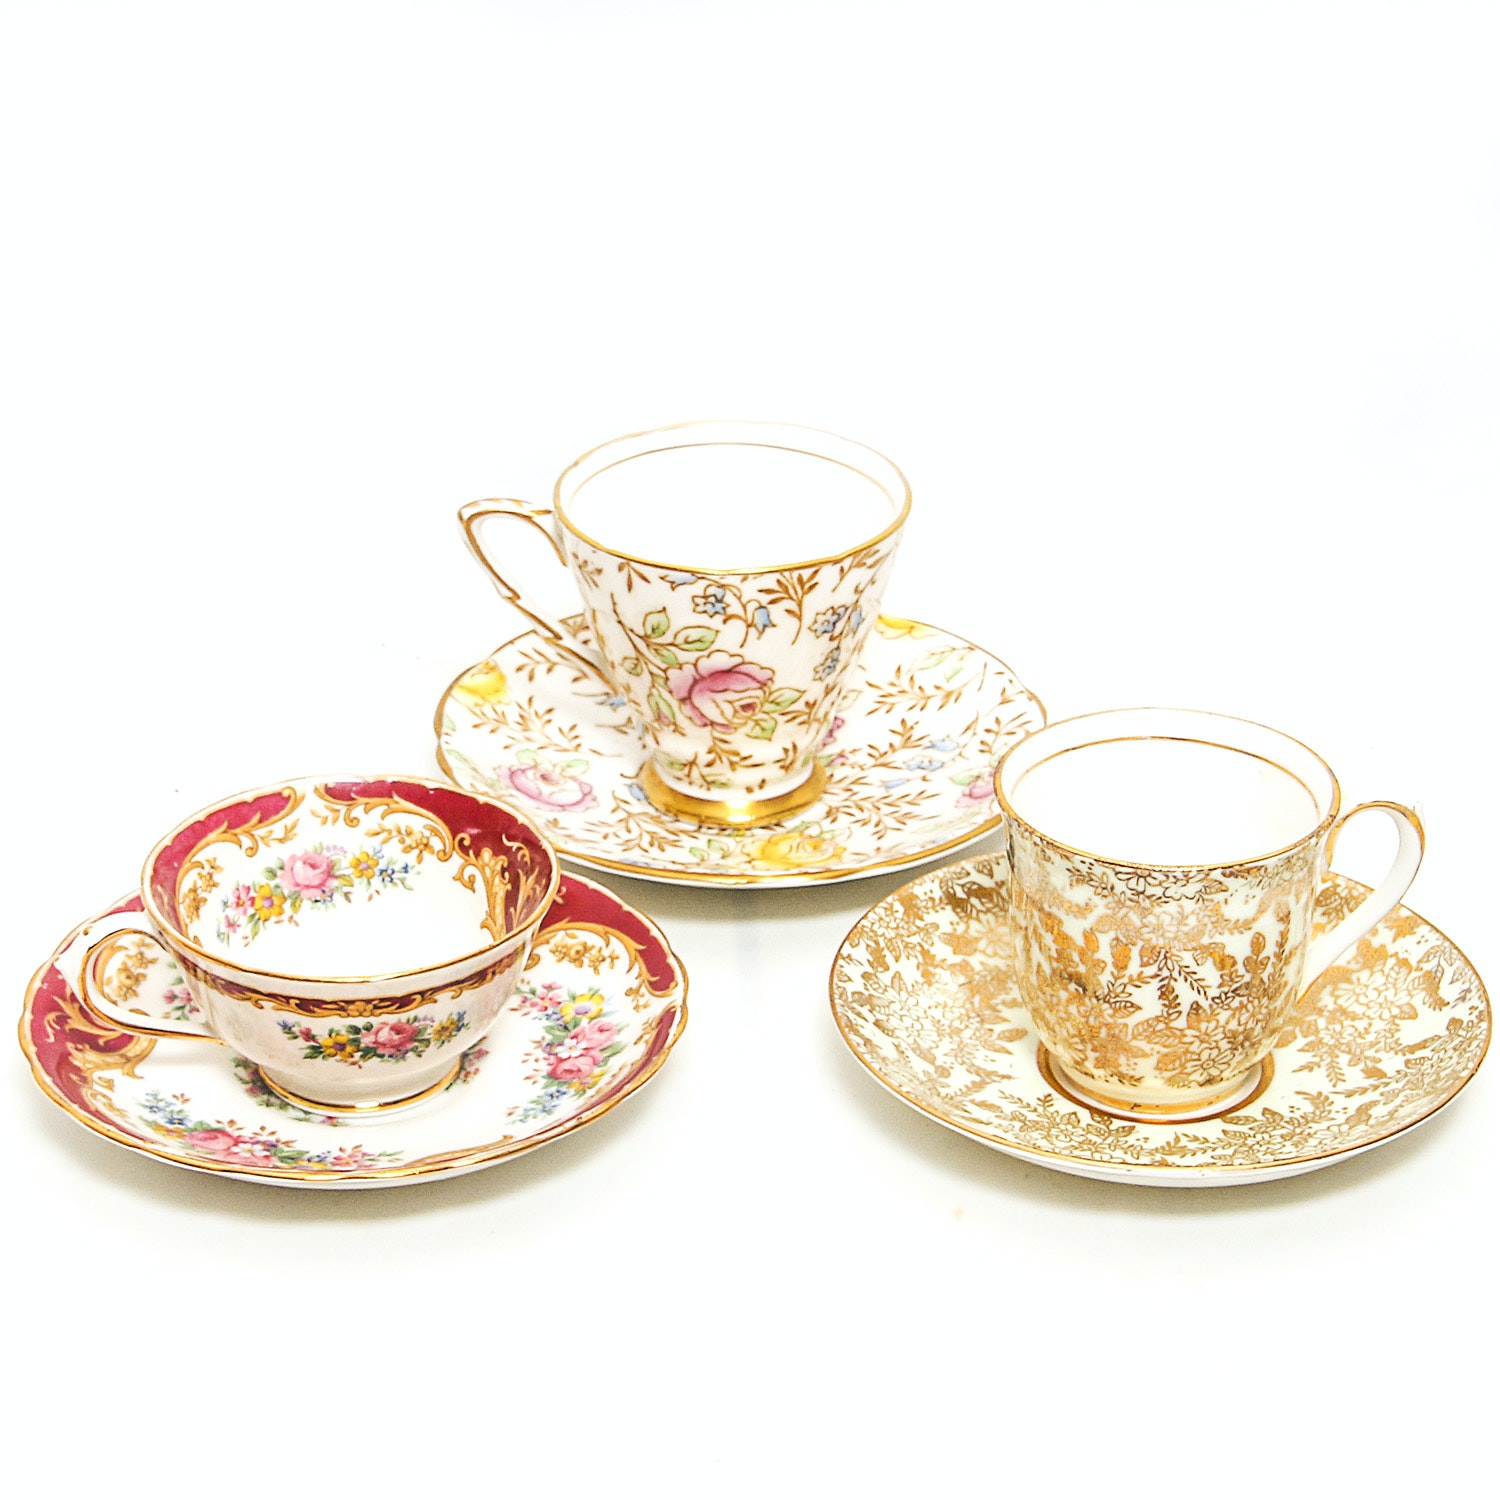 Set of Demitasse China Cups and Saucers